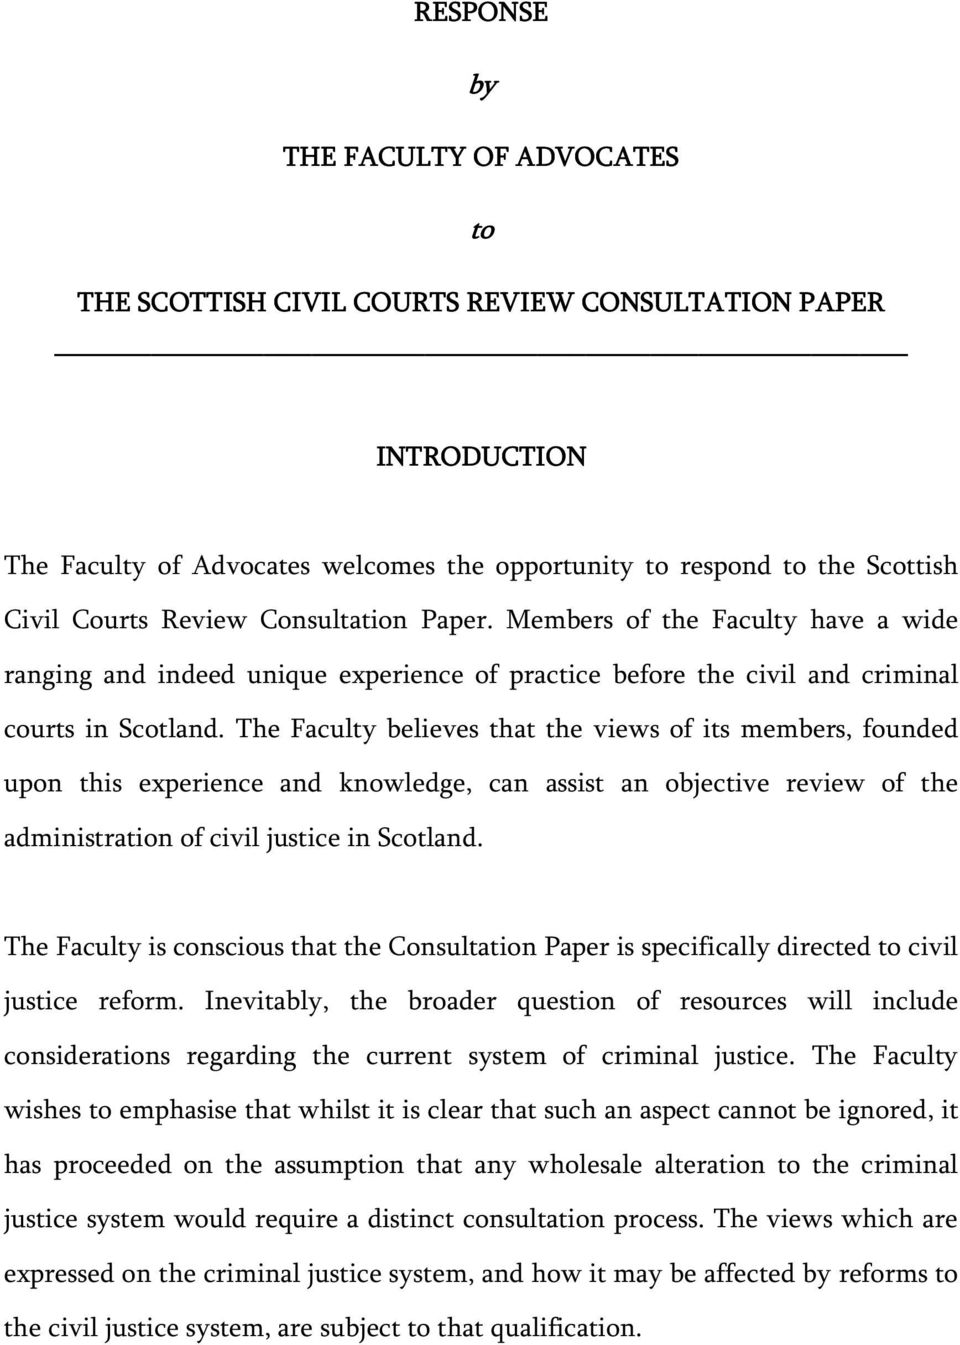 The Faculty believes that the views of its members, founded upon this experience and knowledge, can assist an objective review of the administration of civil justice in Scotland.